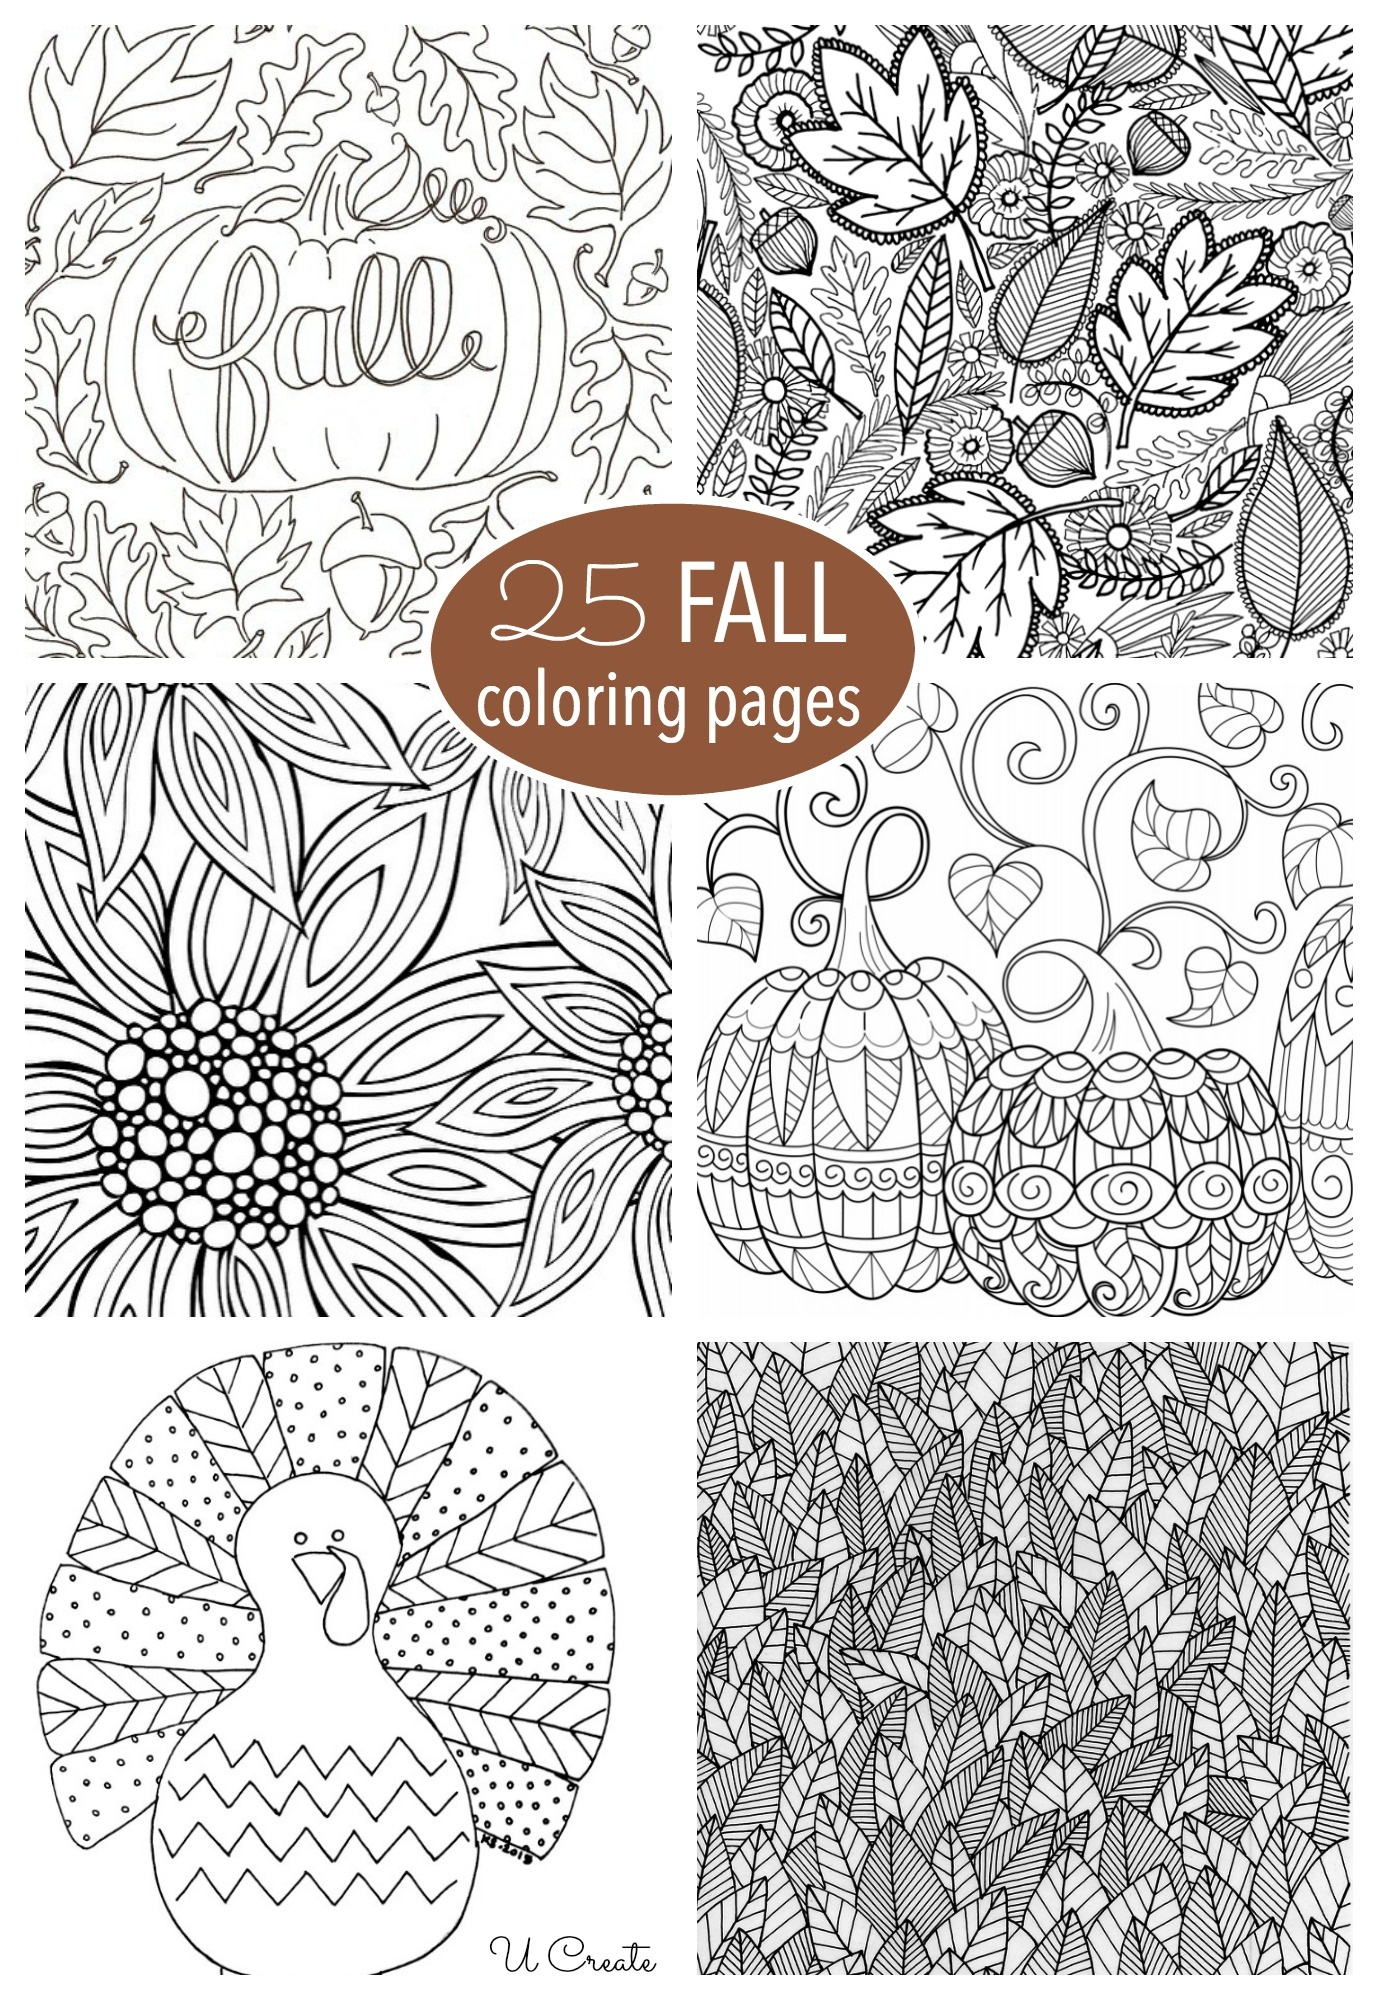 Free Fall Adult Coloring Pages - U Create - Free Printable Fall Coloring Pages